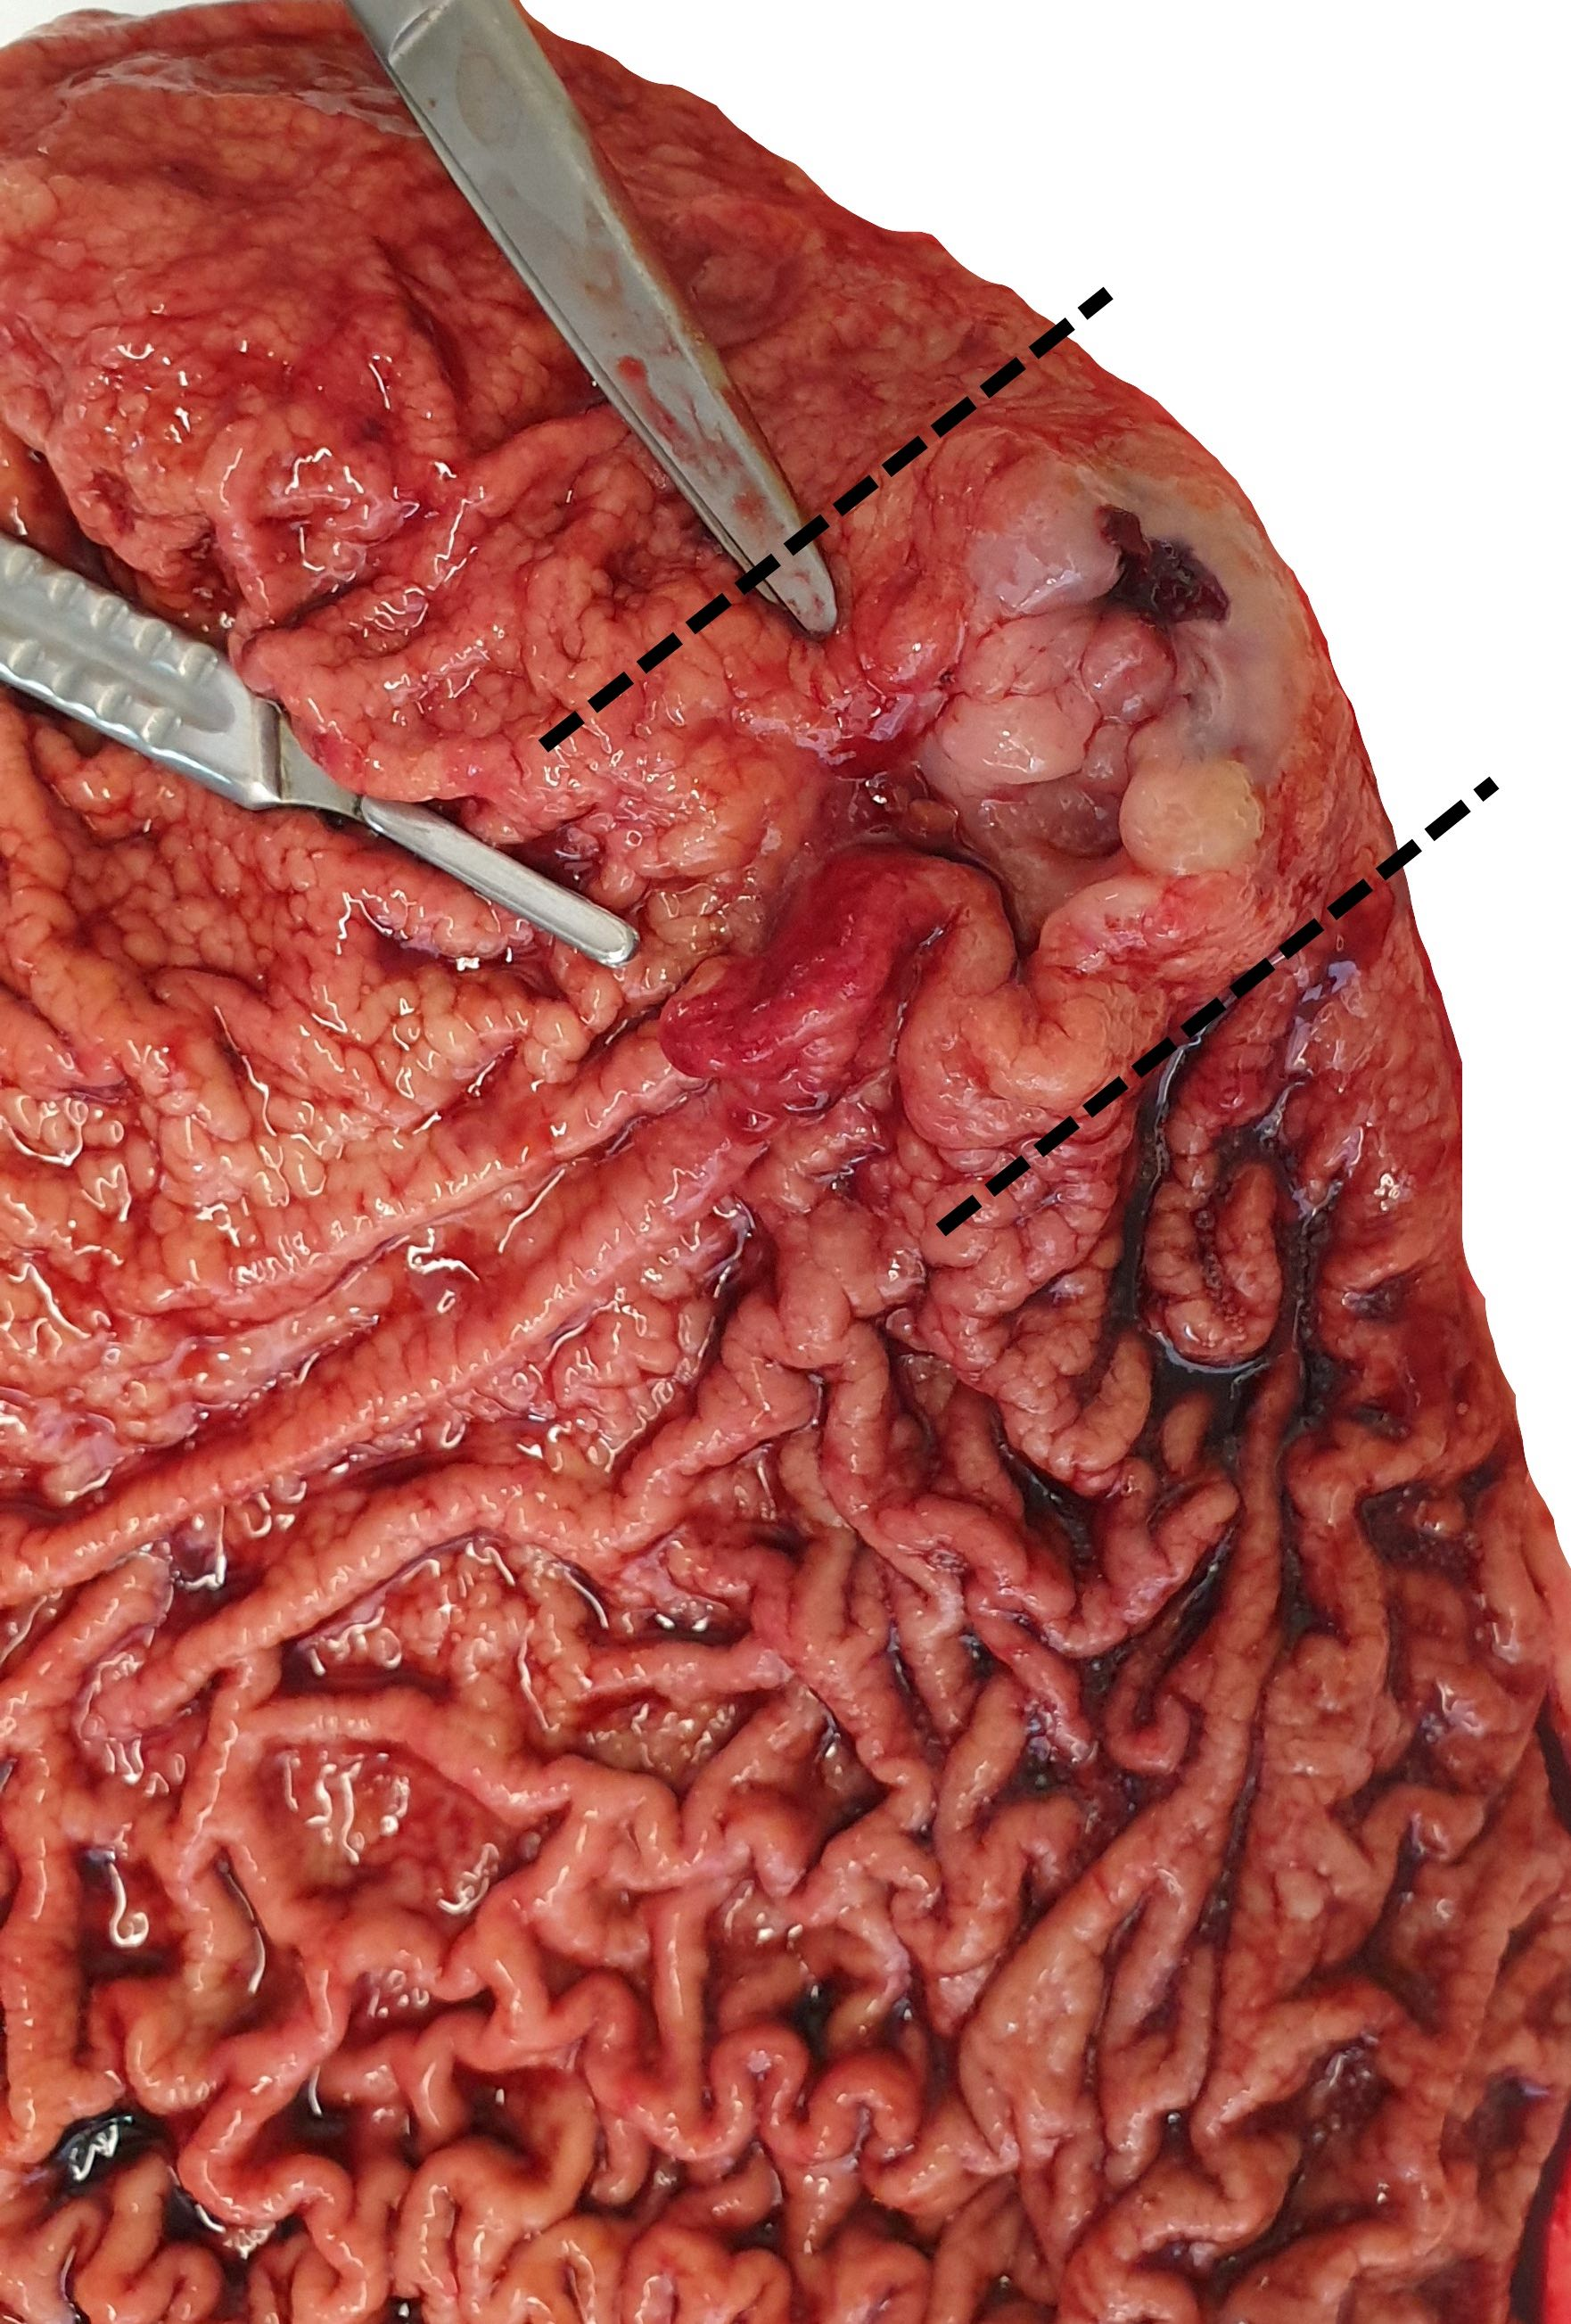 Mass in the gastric body